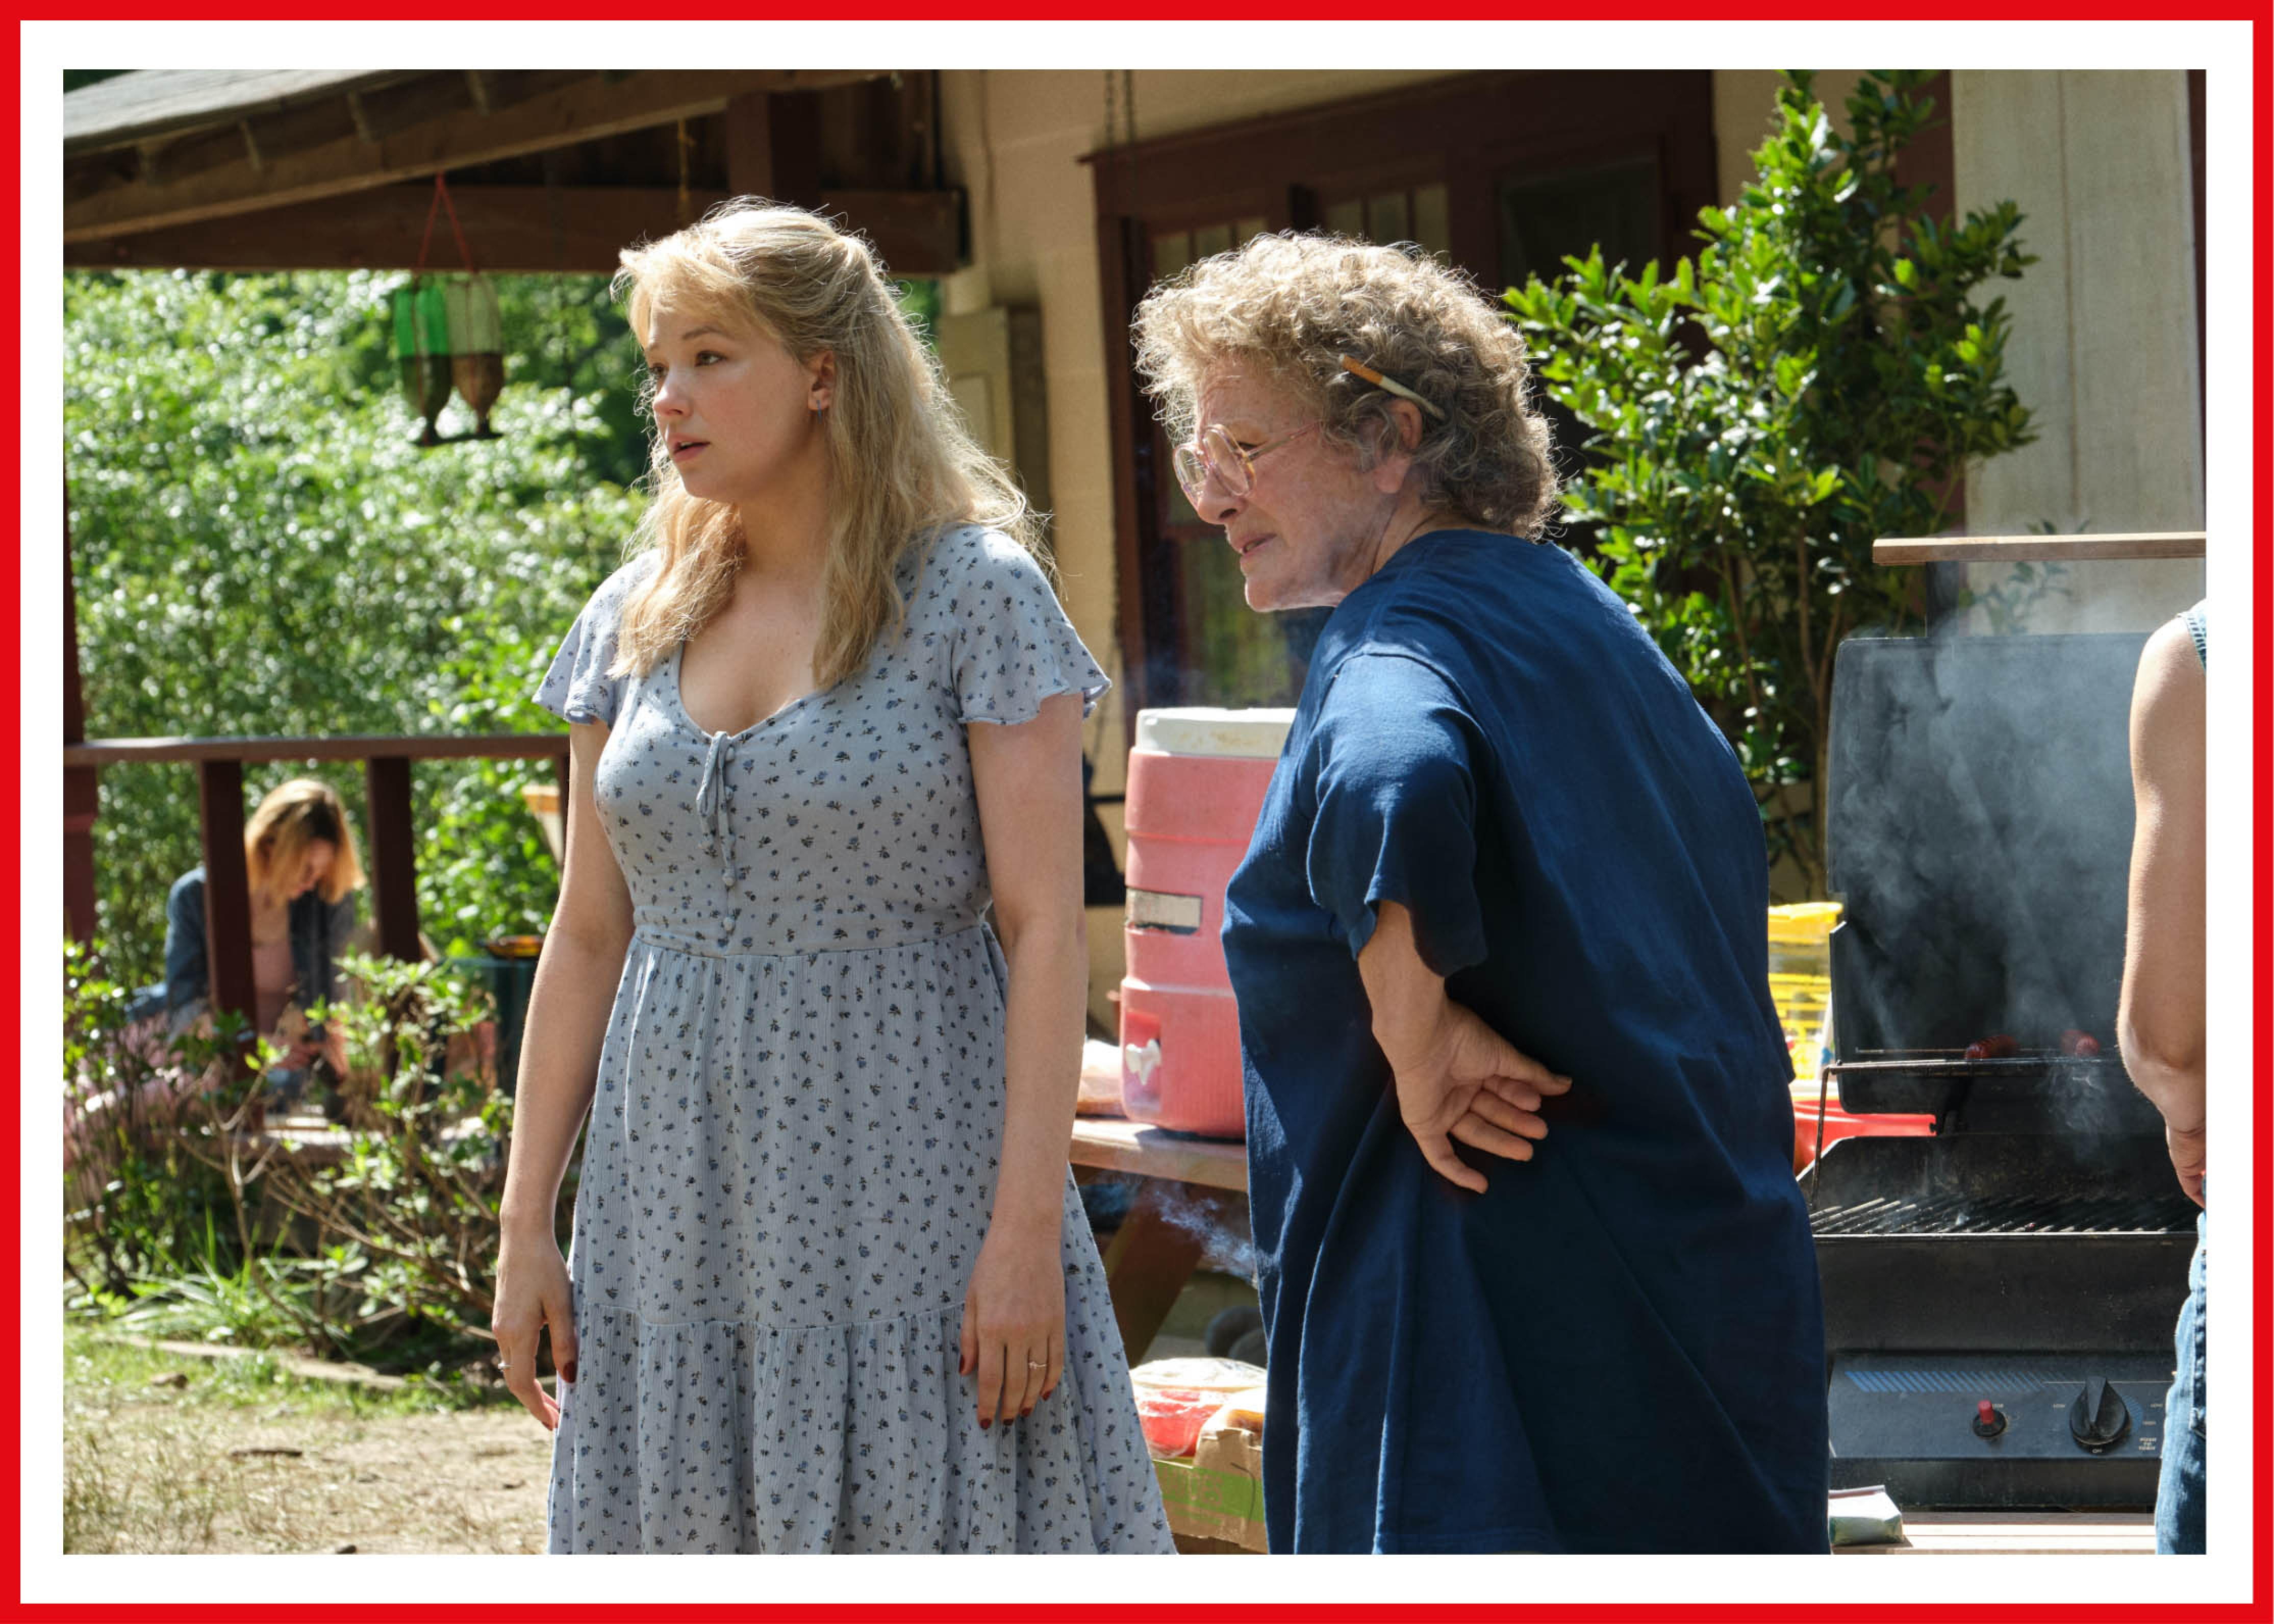 Haley Bennett as Lindsay Vance wears a blue babydoll dress that stands in contrast to the oversized t-shirt her co-star Glenn Close sports as Mamaw.